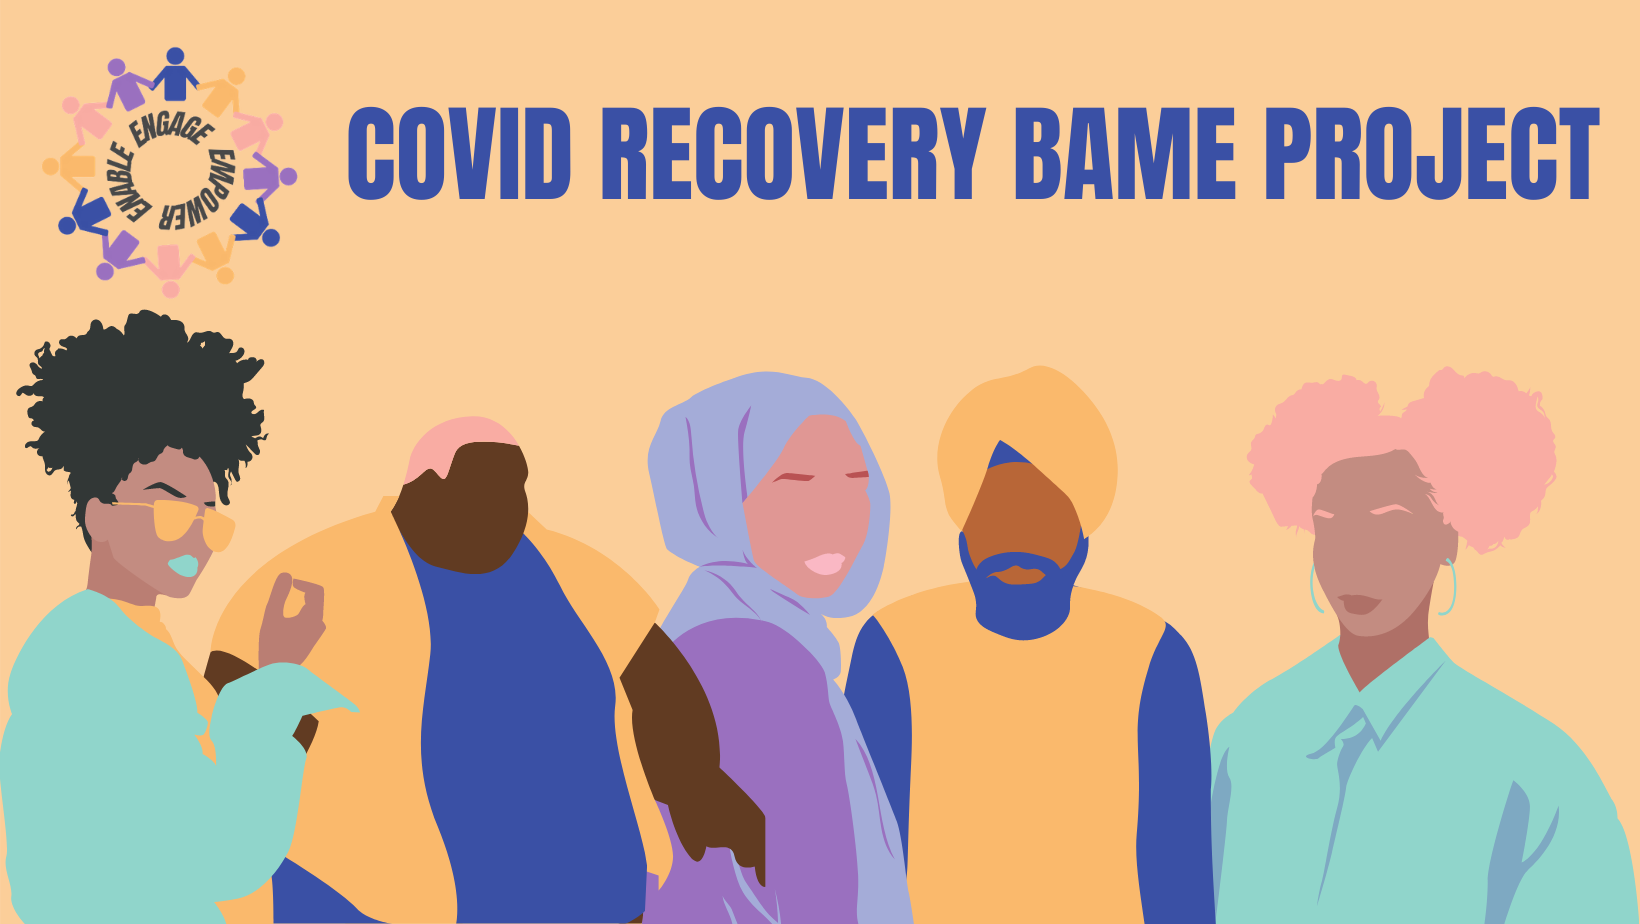 Covid Recovery BAME Project